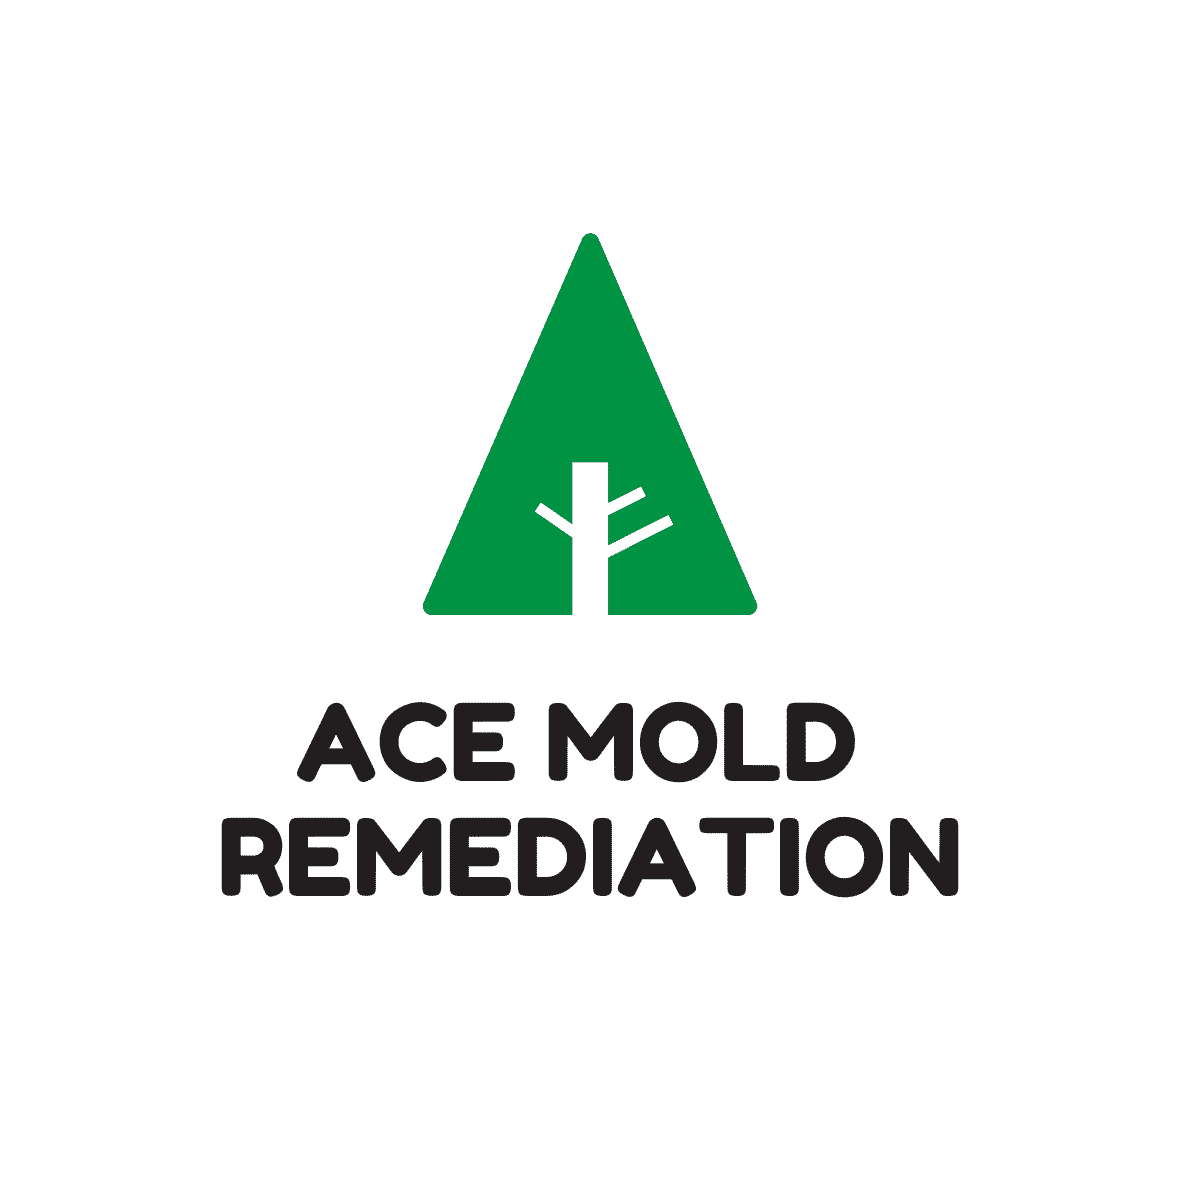 Ace Mold Remediation